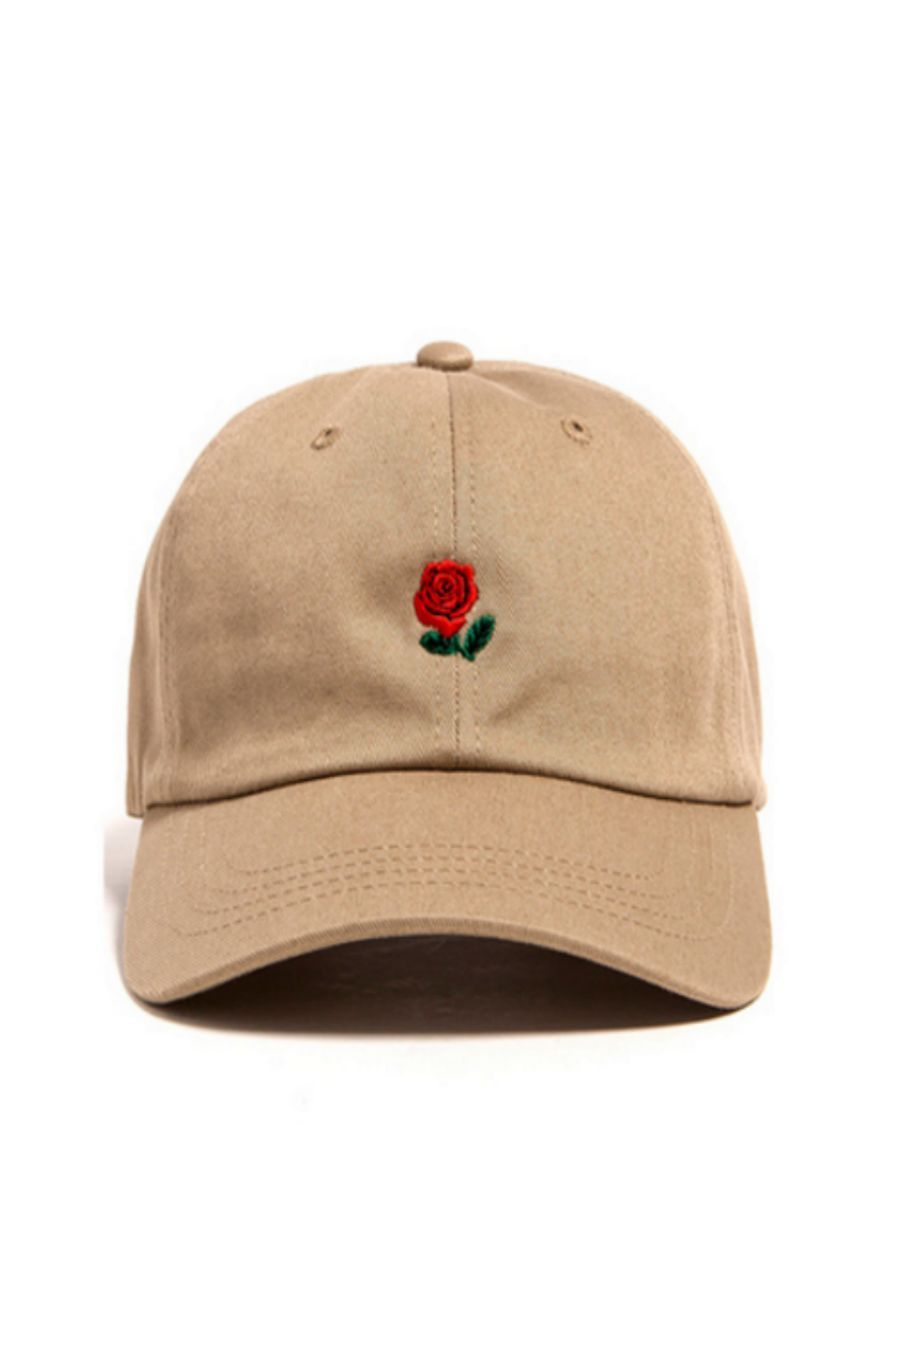 c07d232bc80 Rose Embroidered Hat In Tan in 2019